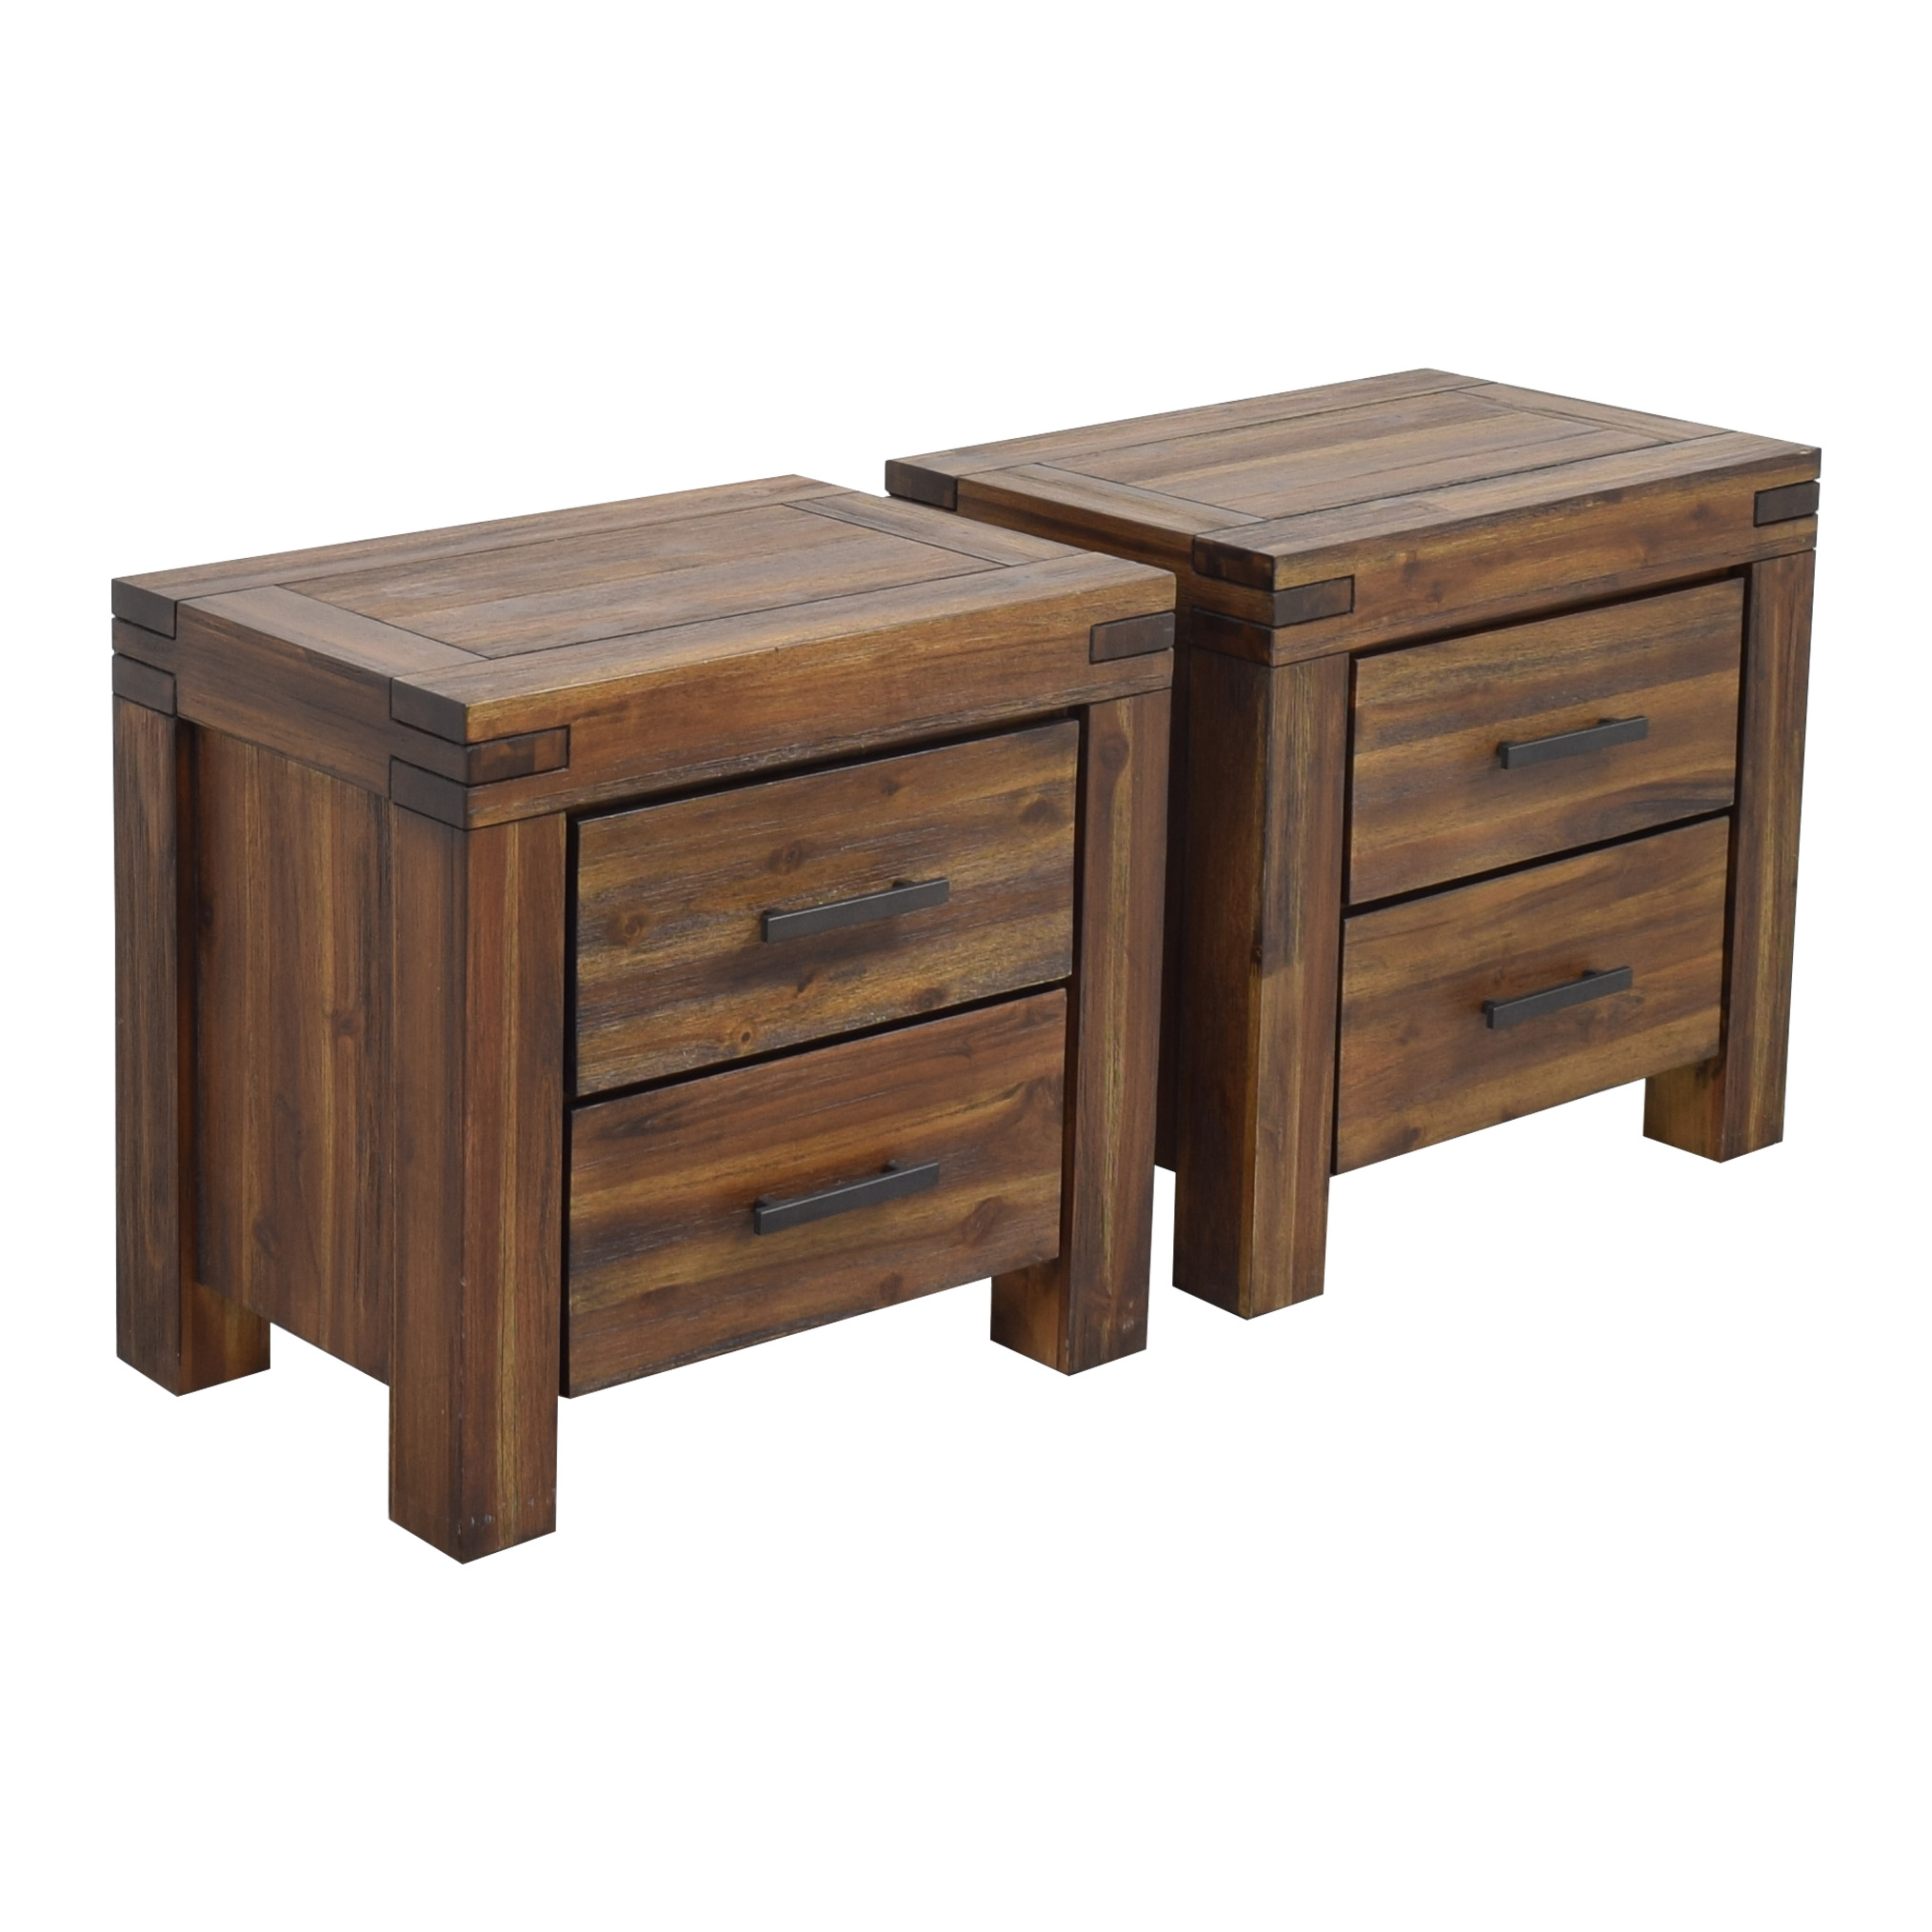 Macy's Macy's Avondale Nightstands End Tables